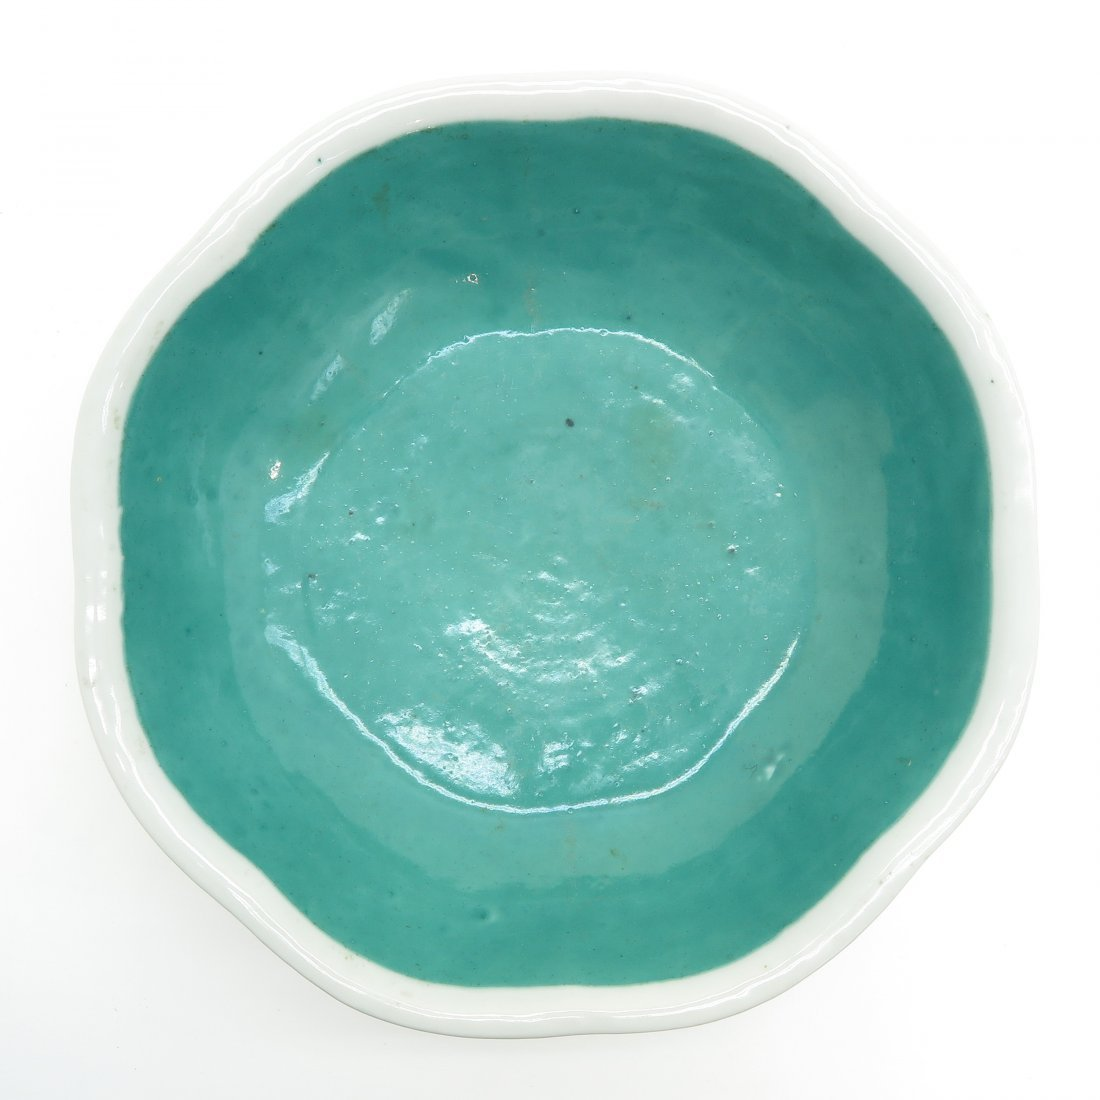 China Porcelain Footed Bowl - 5